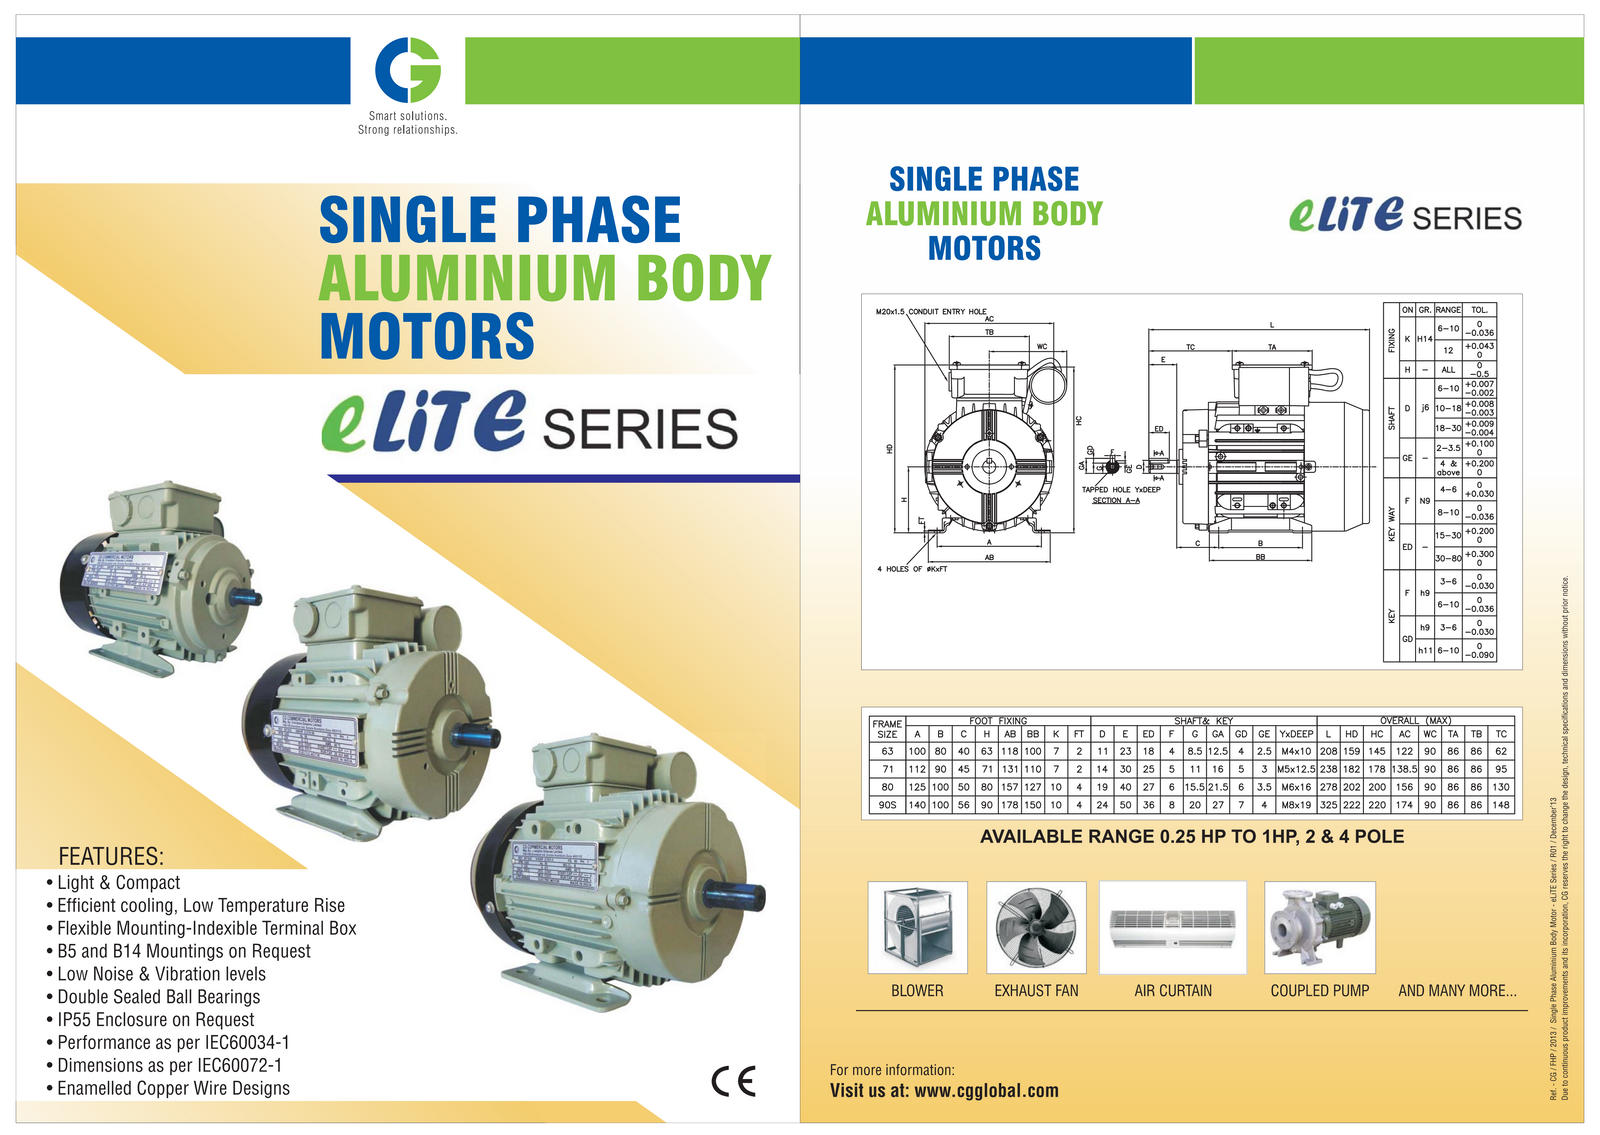 CG Elite Series Electric Motors